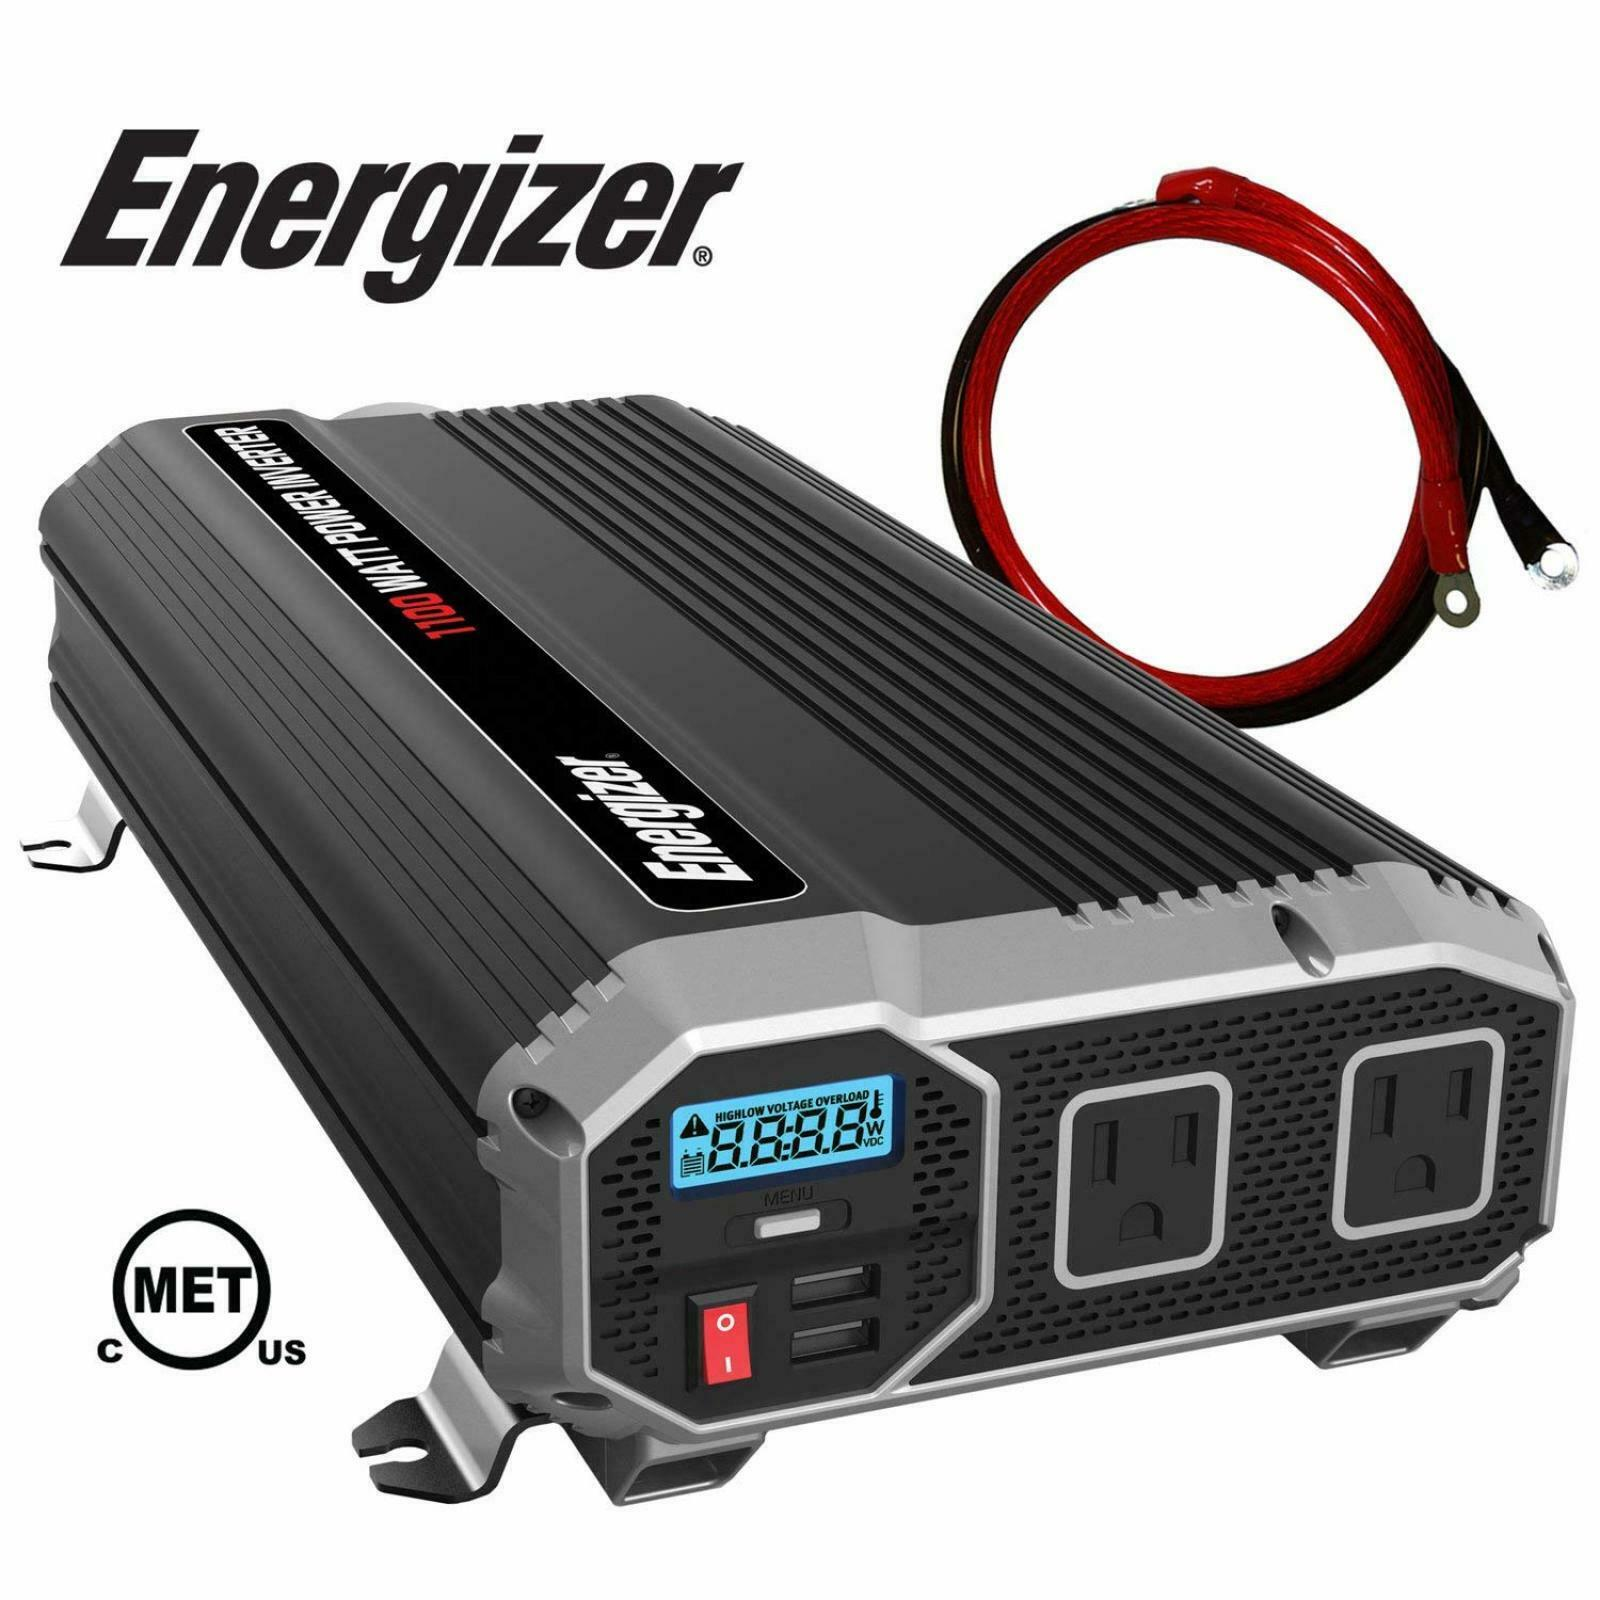 ENERGIZER 12V Power Inverter Dual AC Outlets Automotive Back Up Power Supply NEW 2